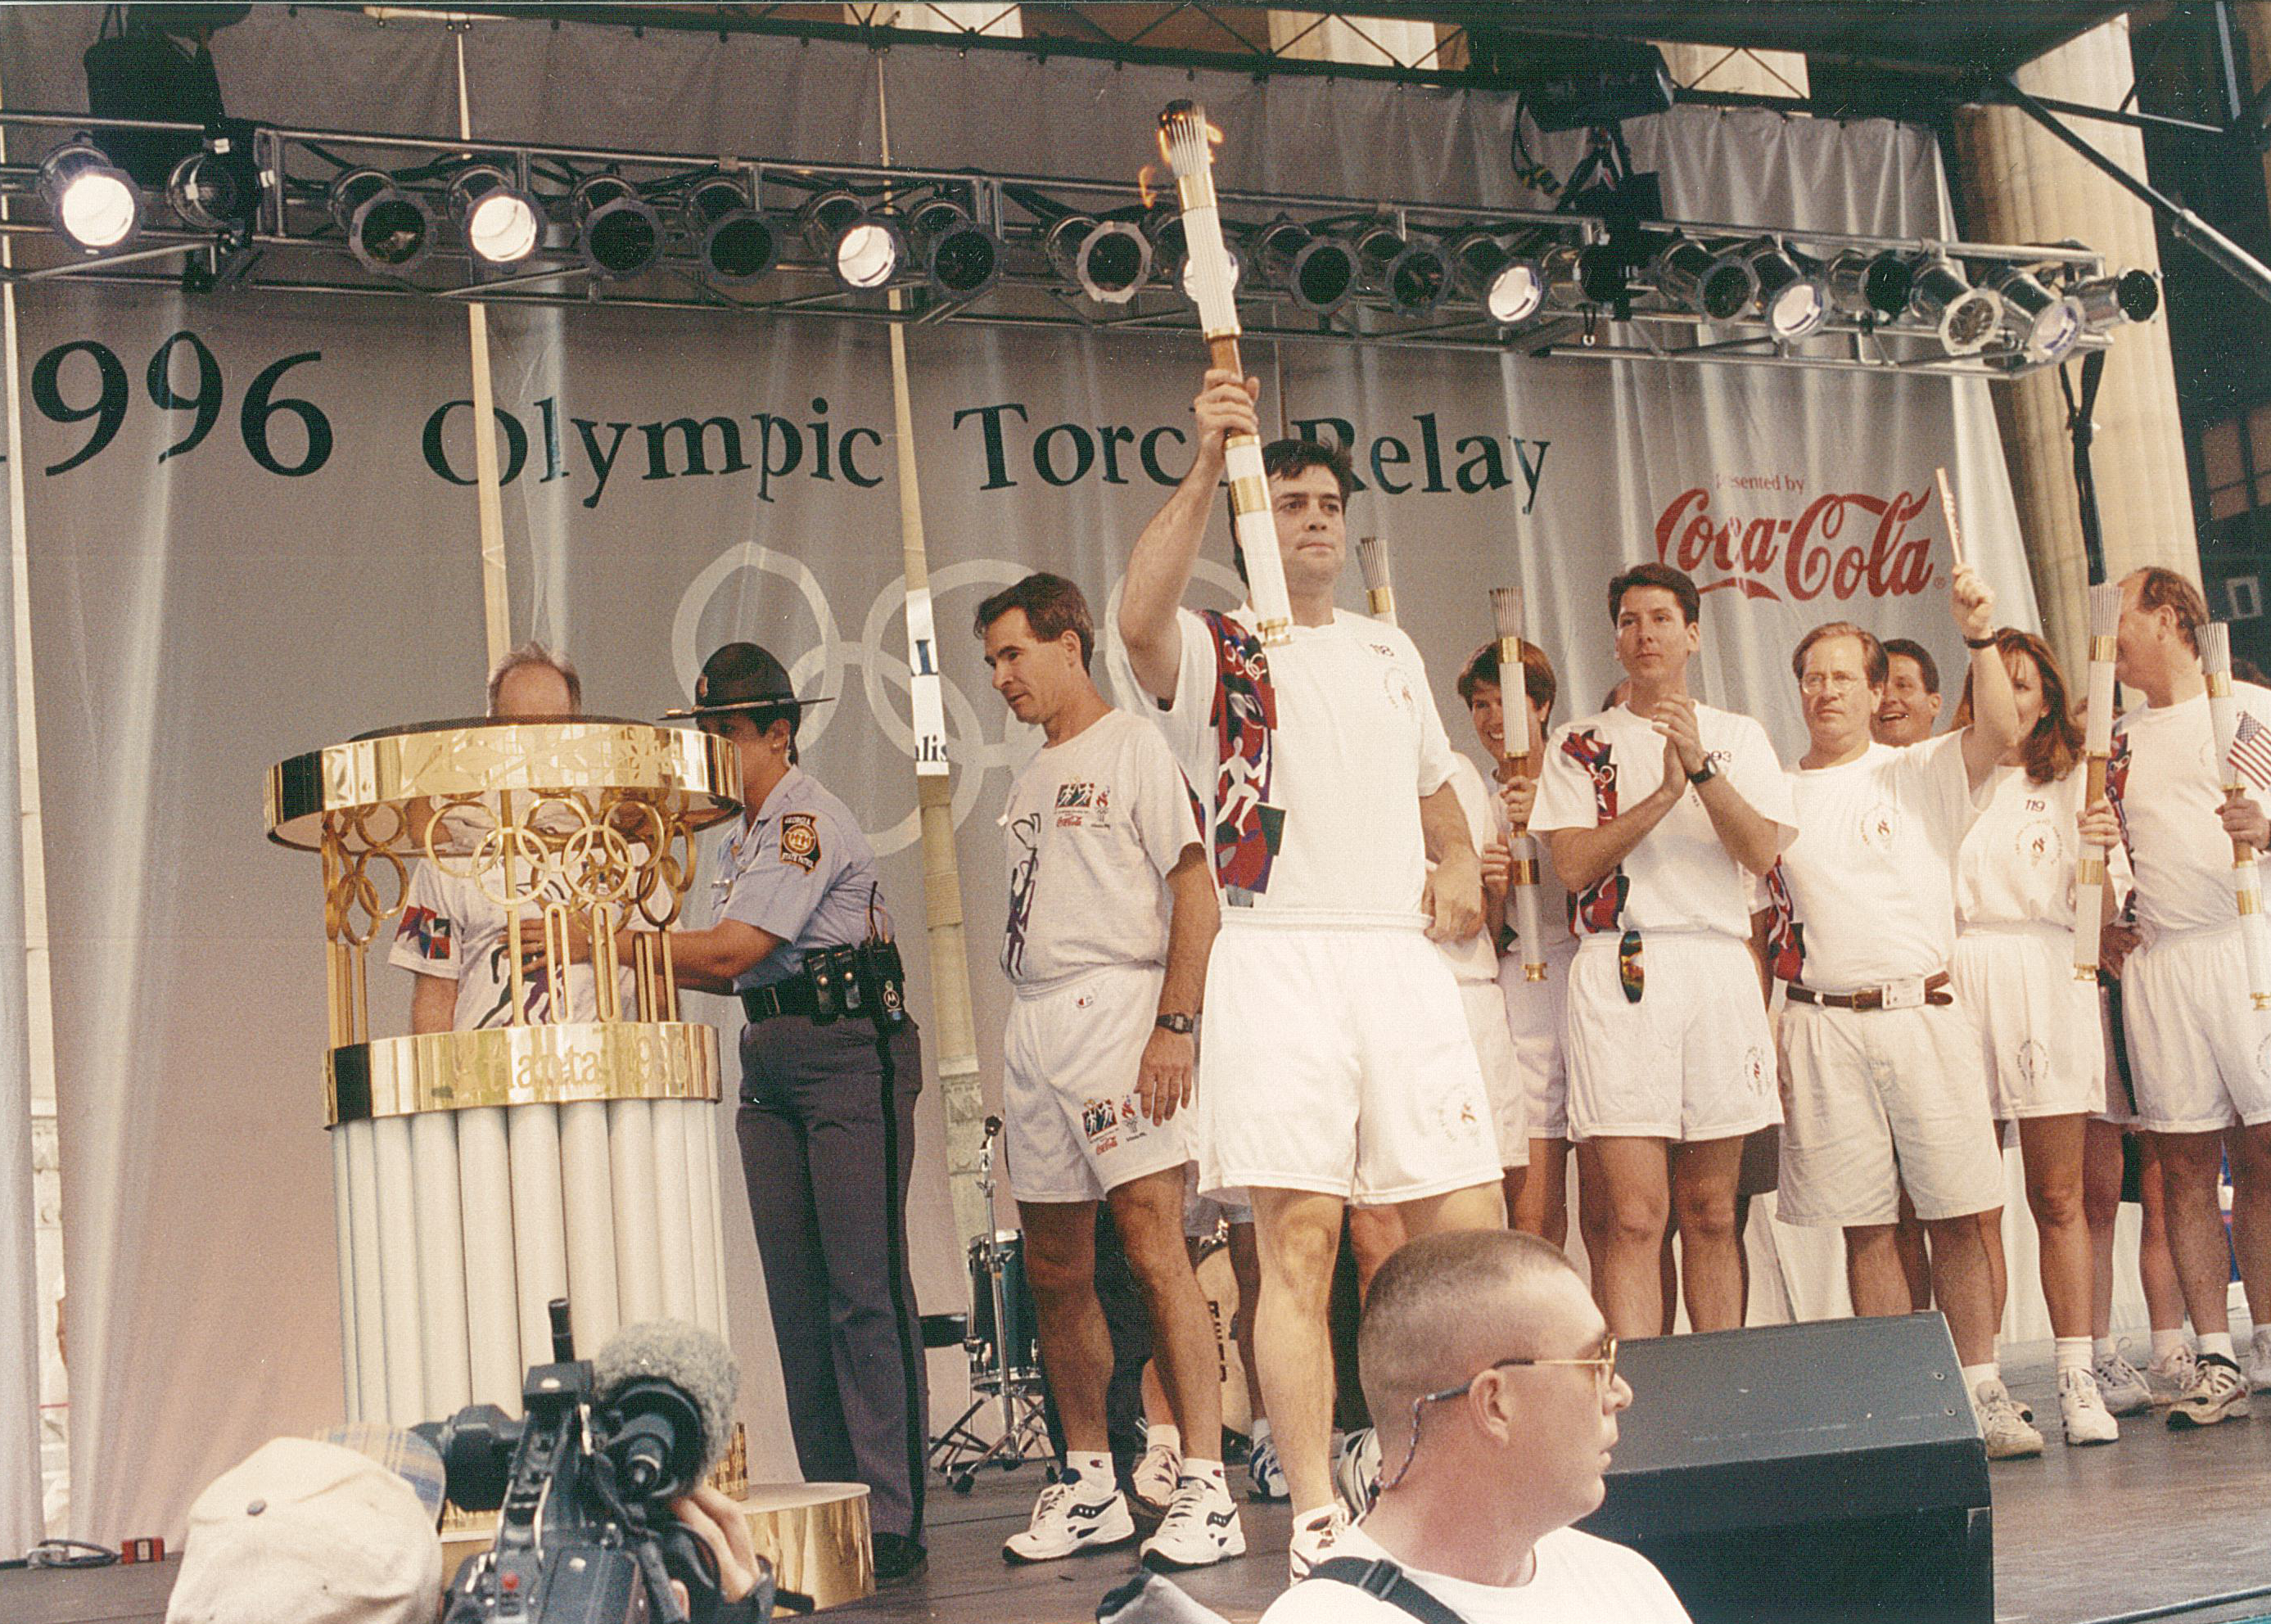 Memory Lane: The 1996 Olympic Torch Run Image